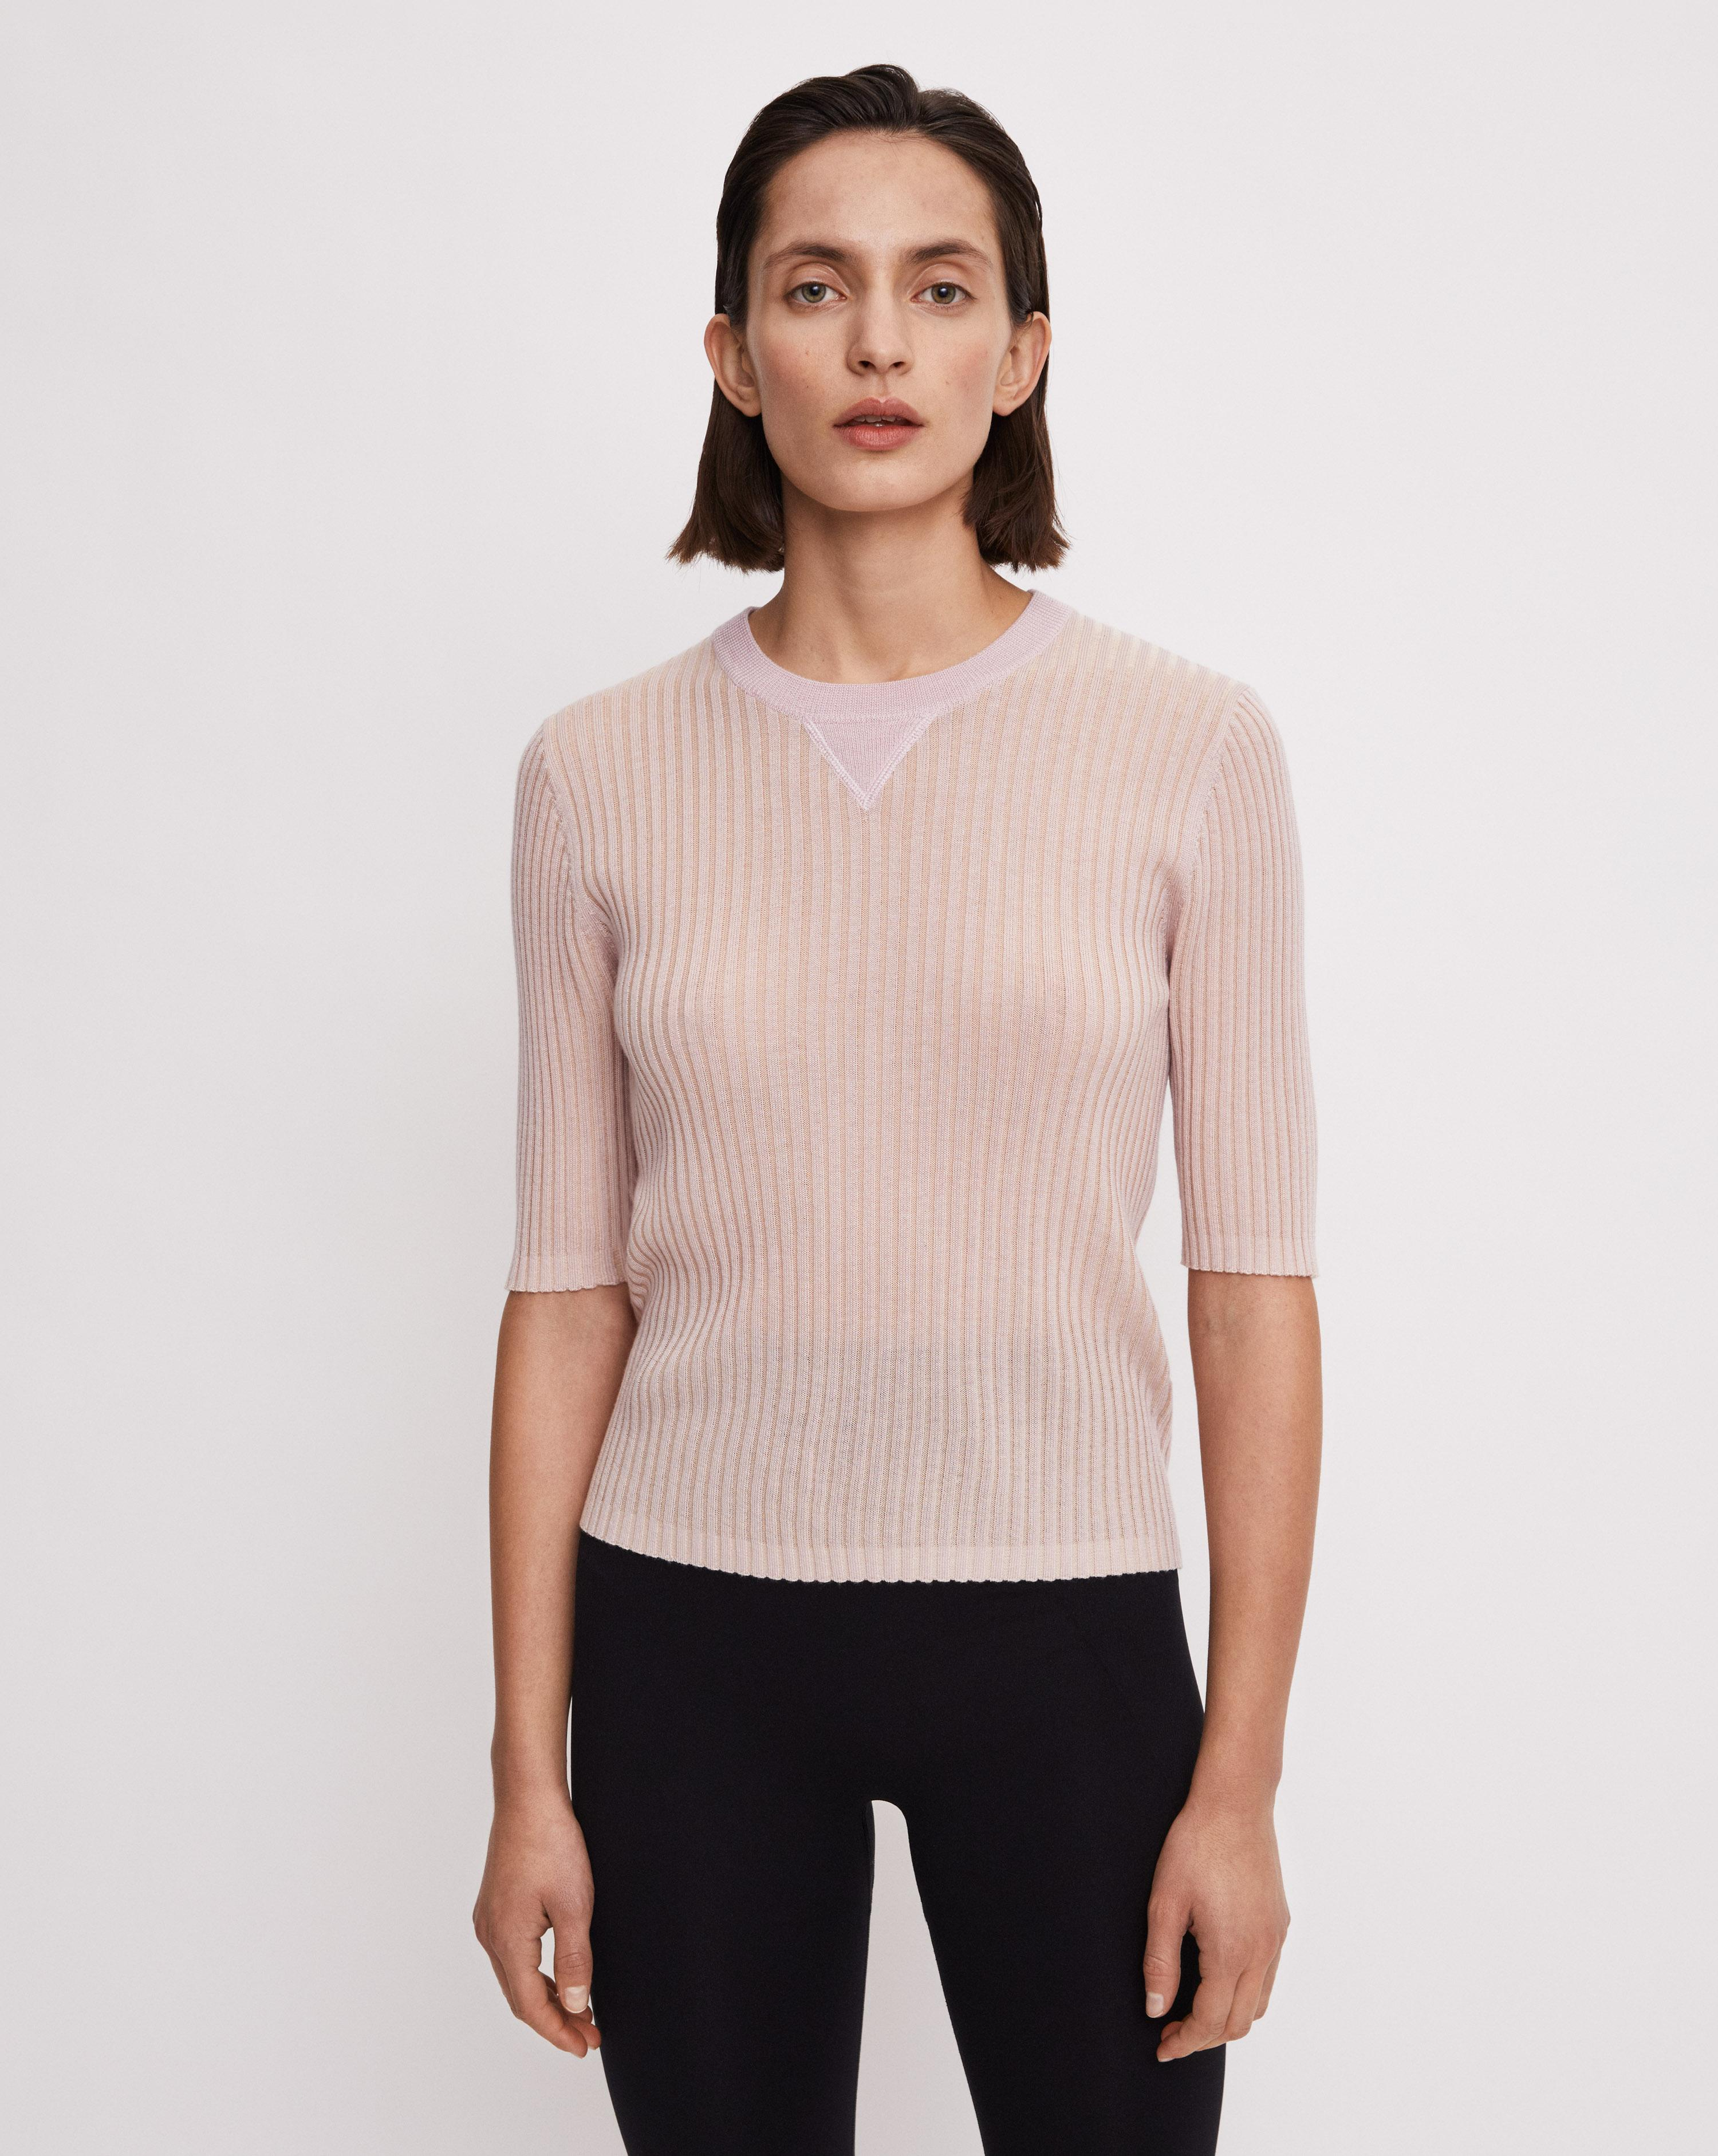 slim rib knit top filippa k